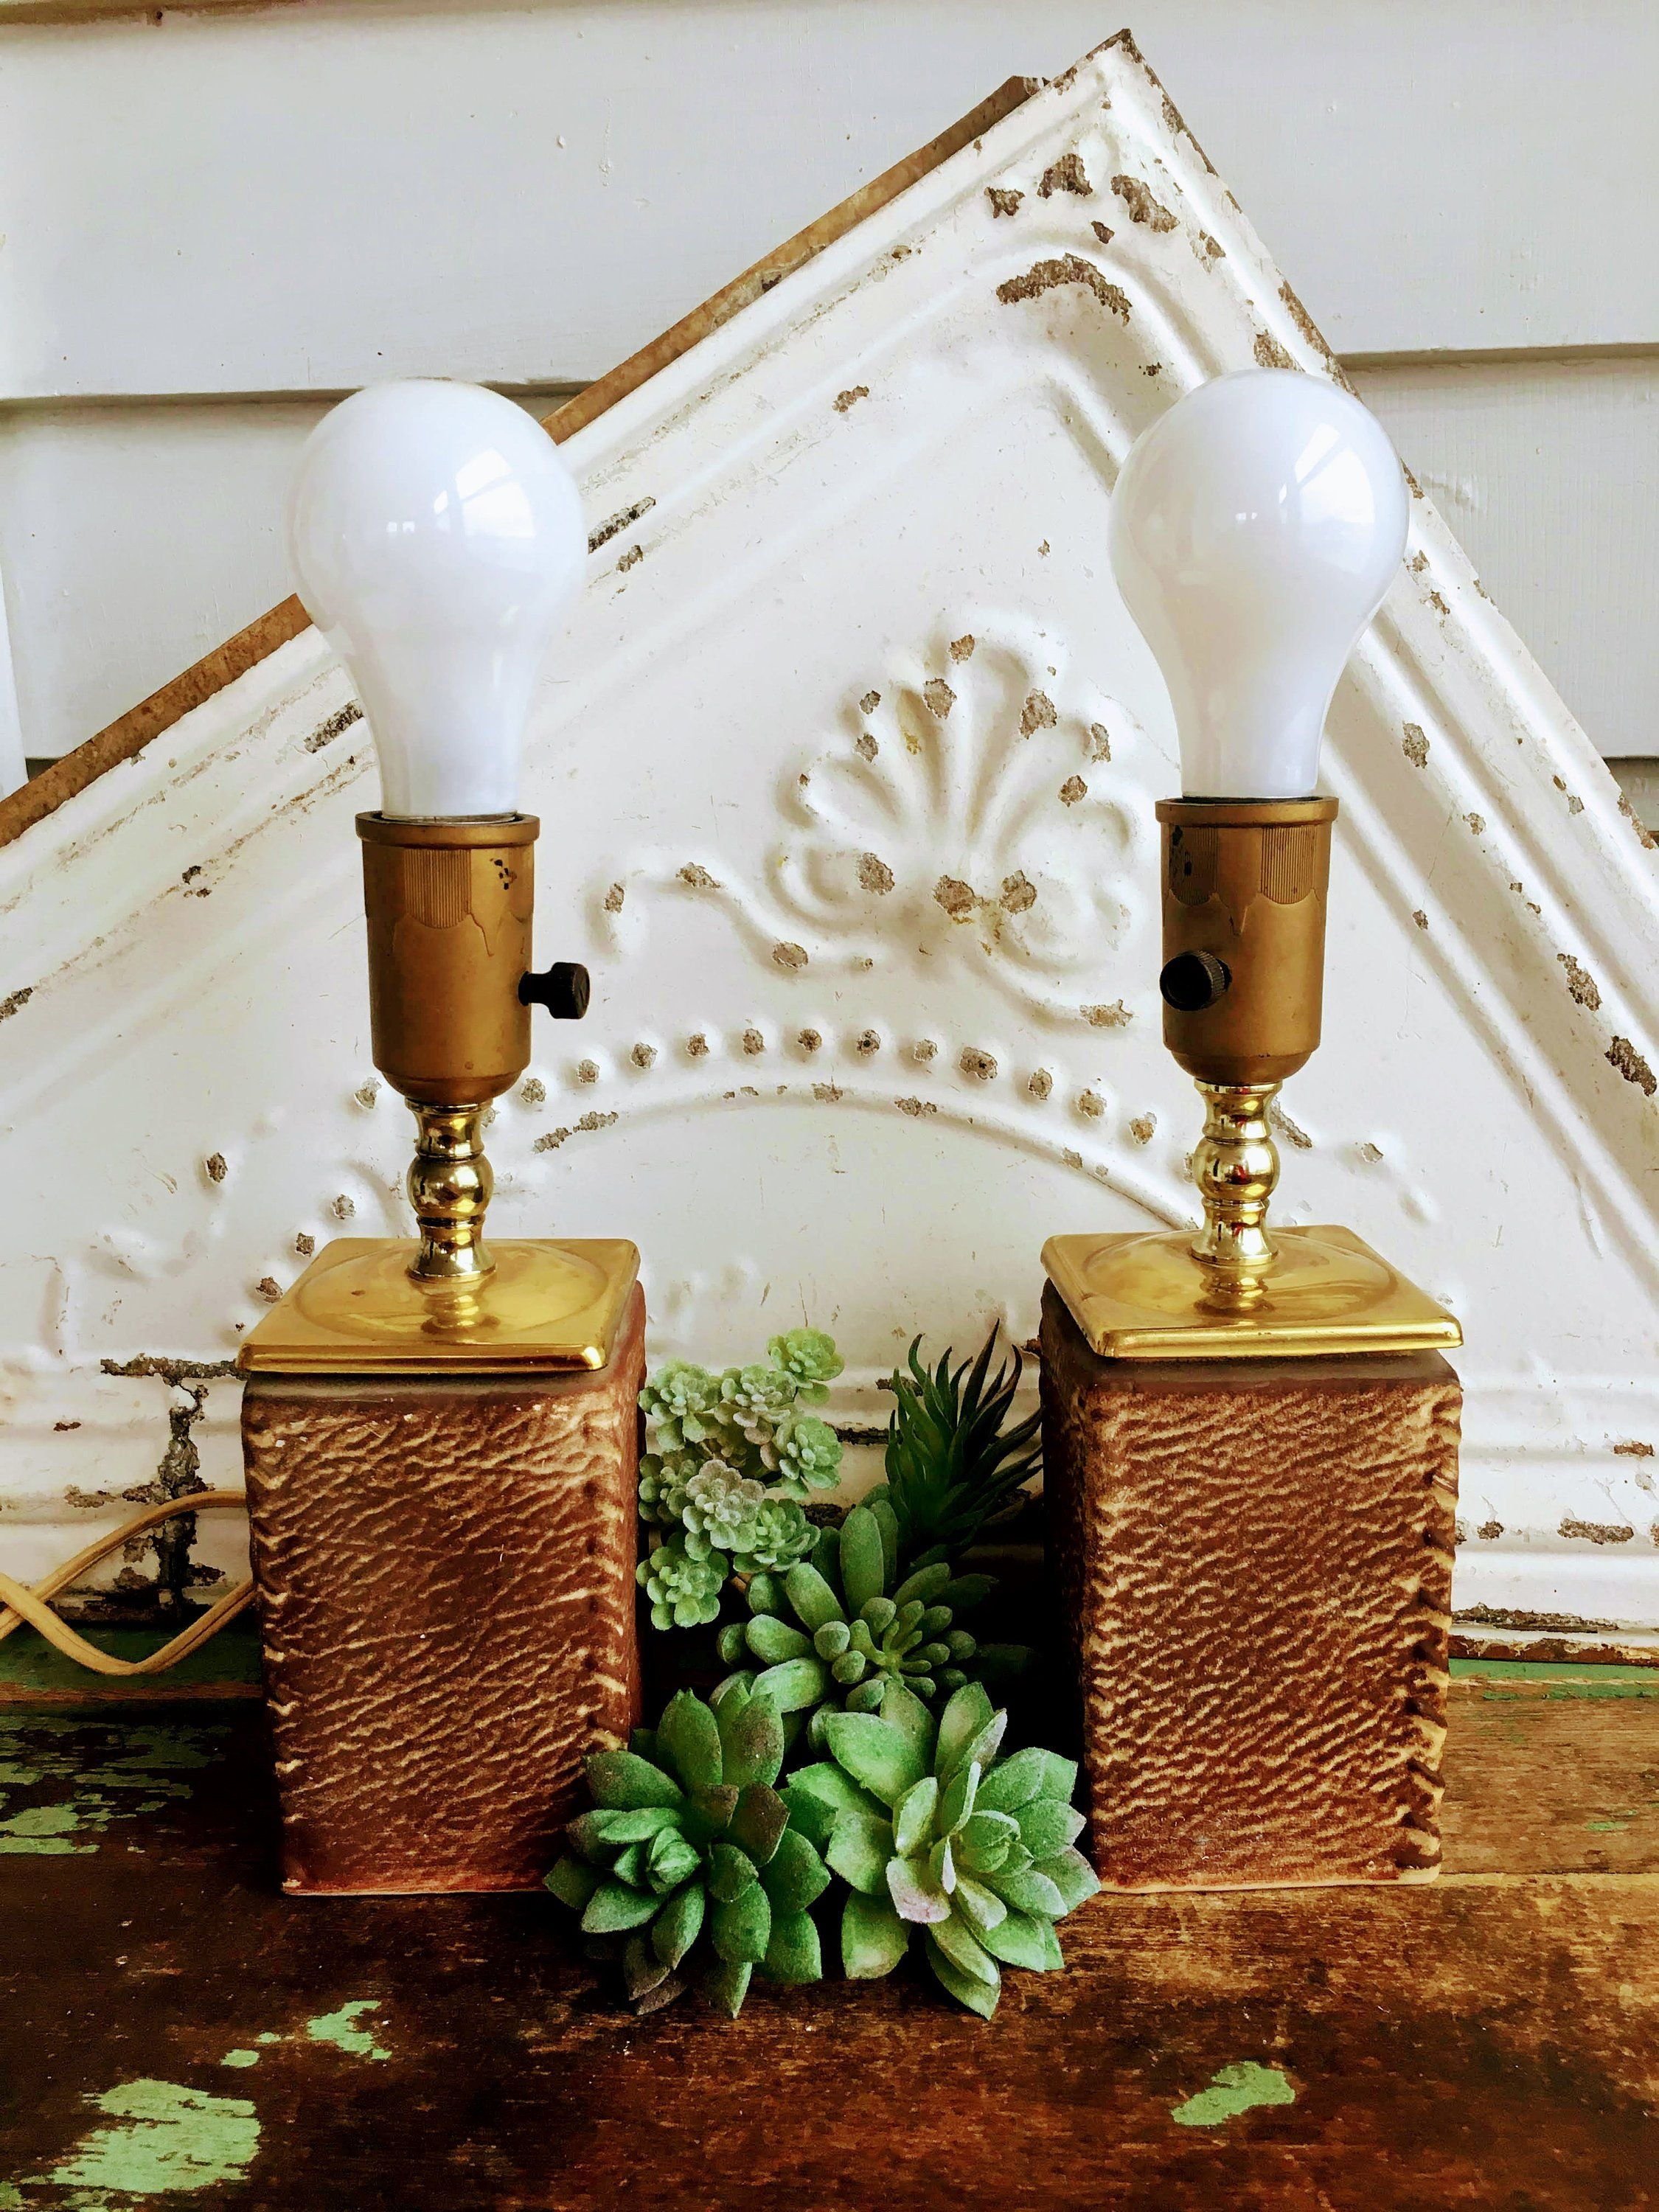 Vintage Pair Small Mid Century Bedside Lamps Ceramic Leather Wood Look Br By Holliezhobbiez On Etsy